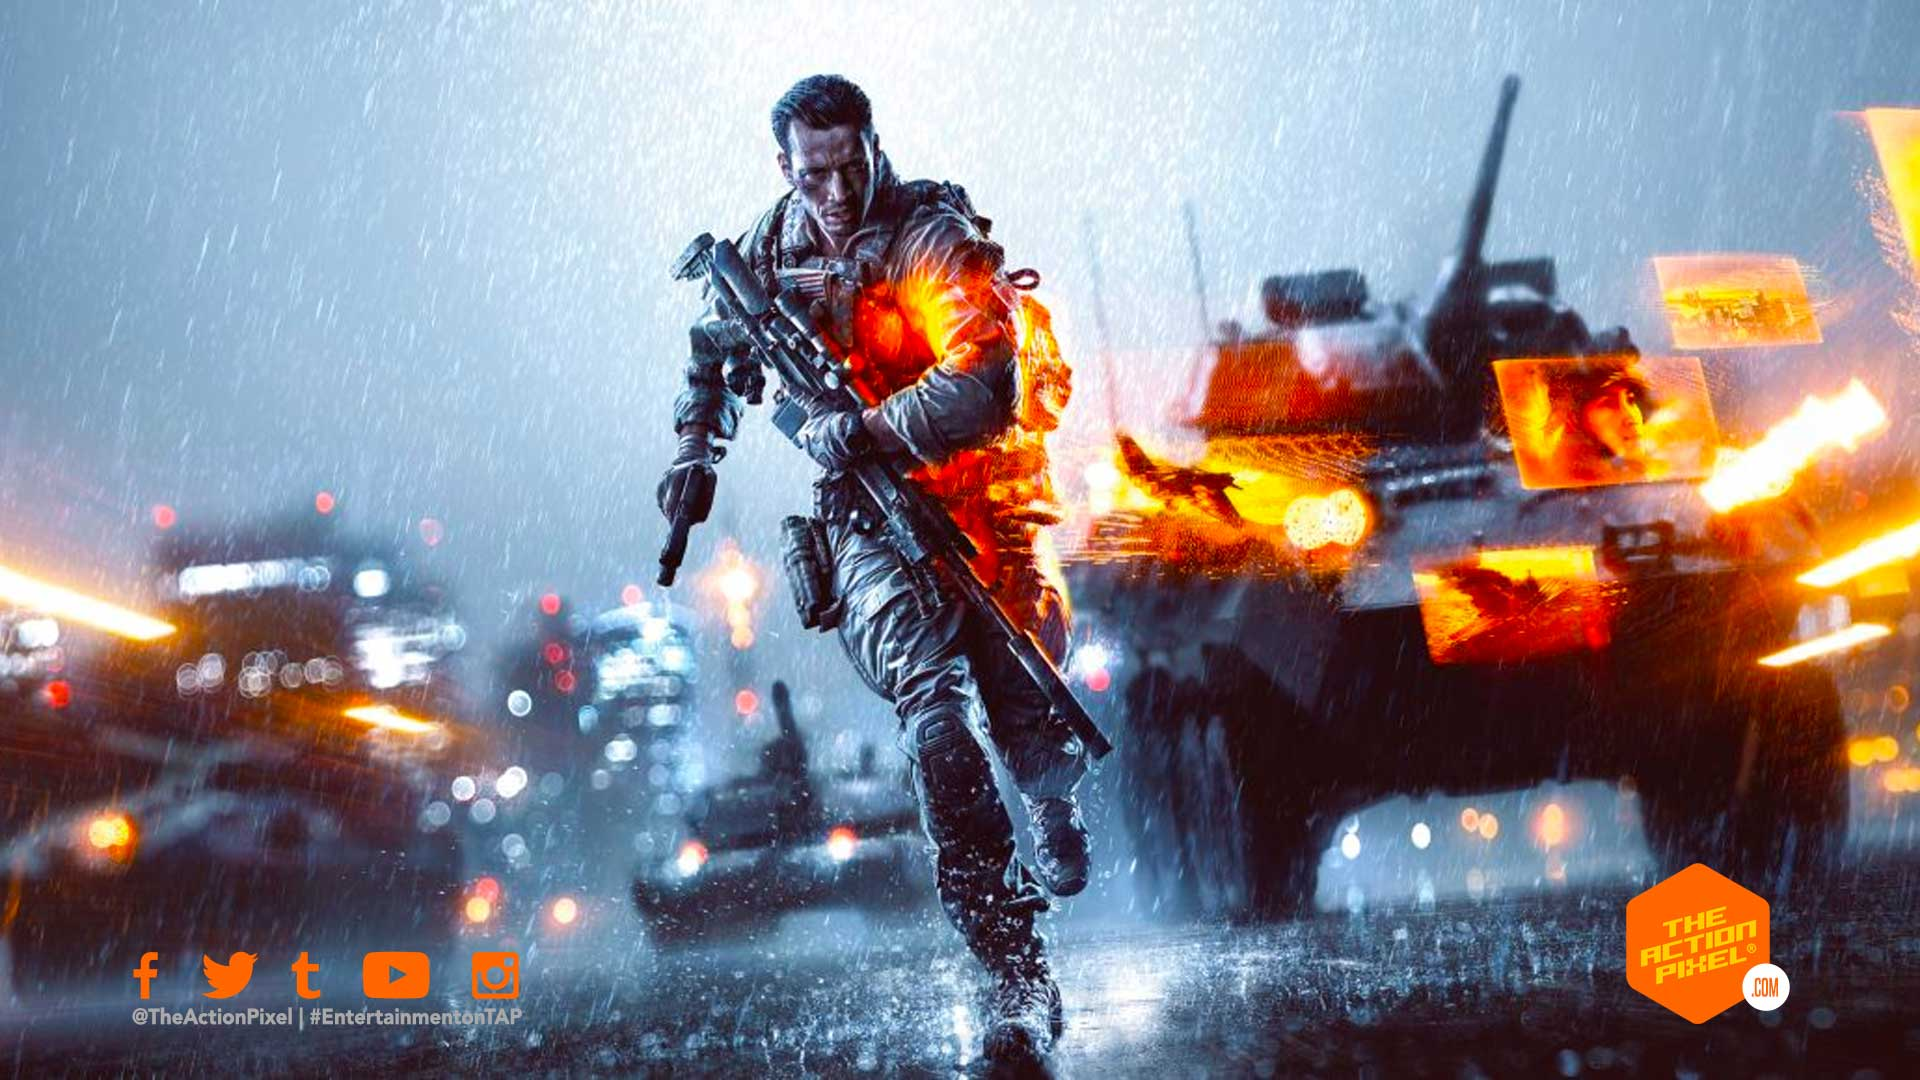 Battlefield 5, battlefield 4, levolution, dynamic levels, ea, r & D,r&d, electronic arts, battlefield game, battlefield 6, battlefield 4, battlefield game, ea games, featured, the action pixel, entertainment news, entertainment on tap,